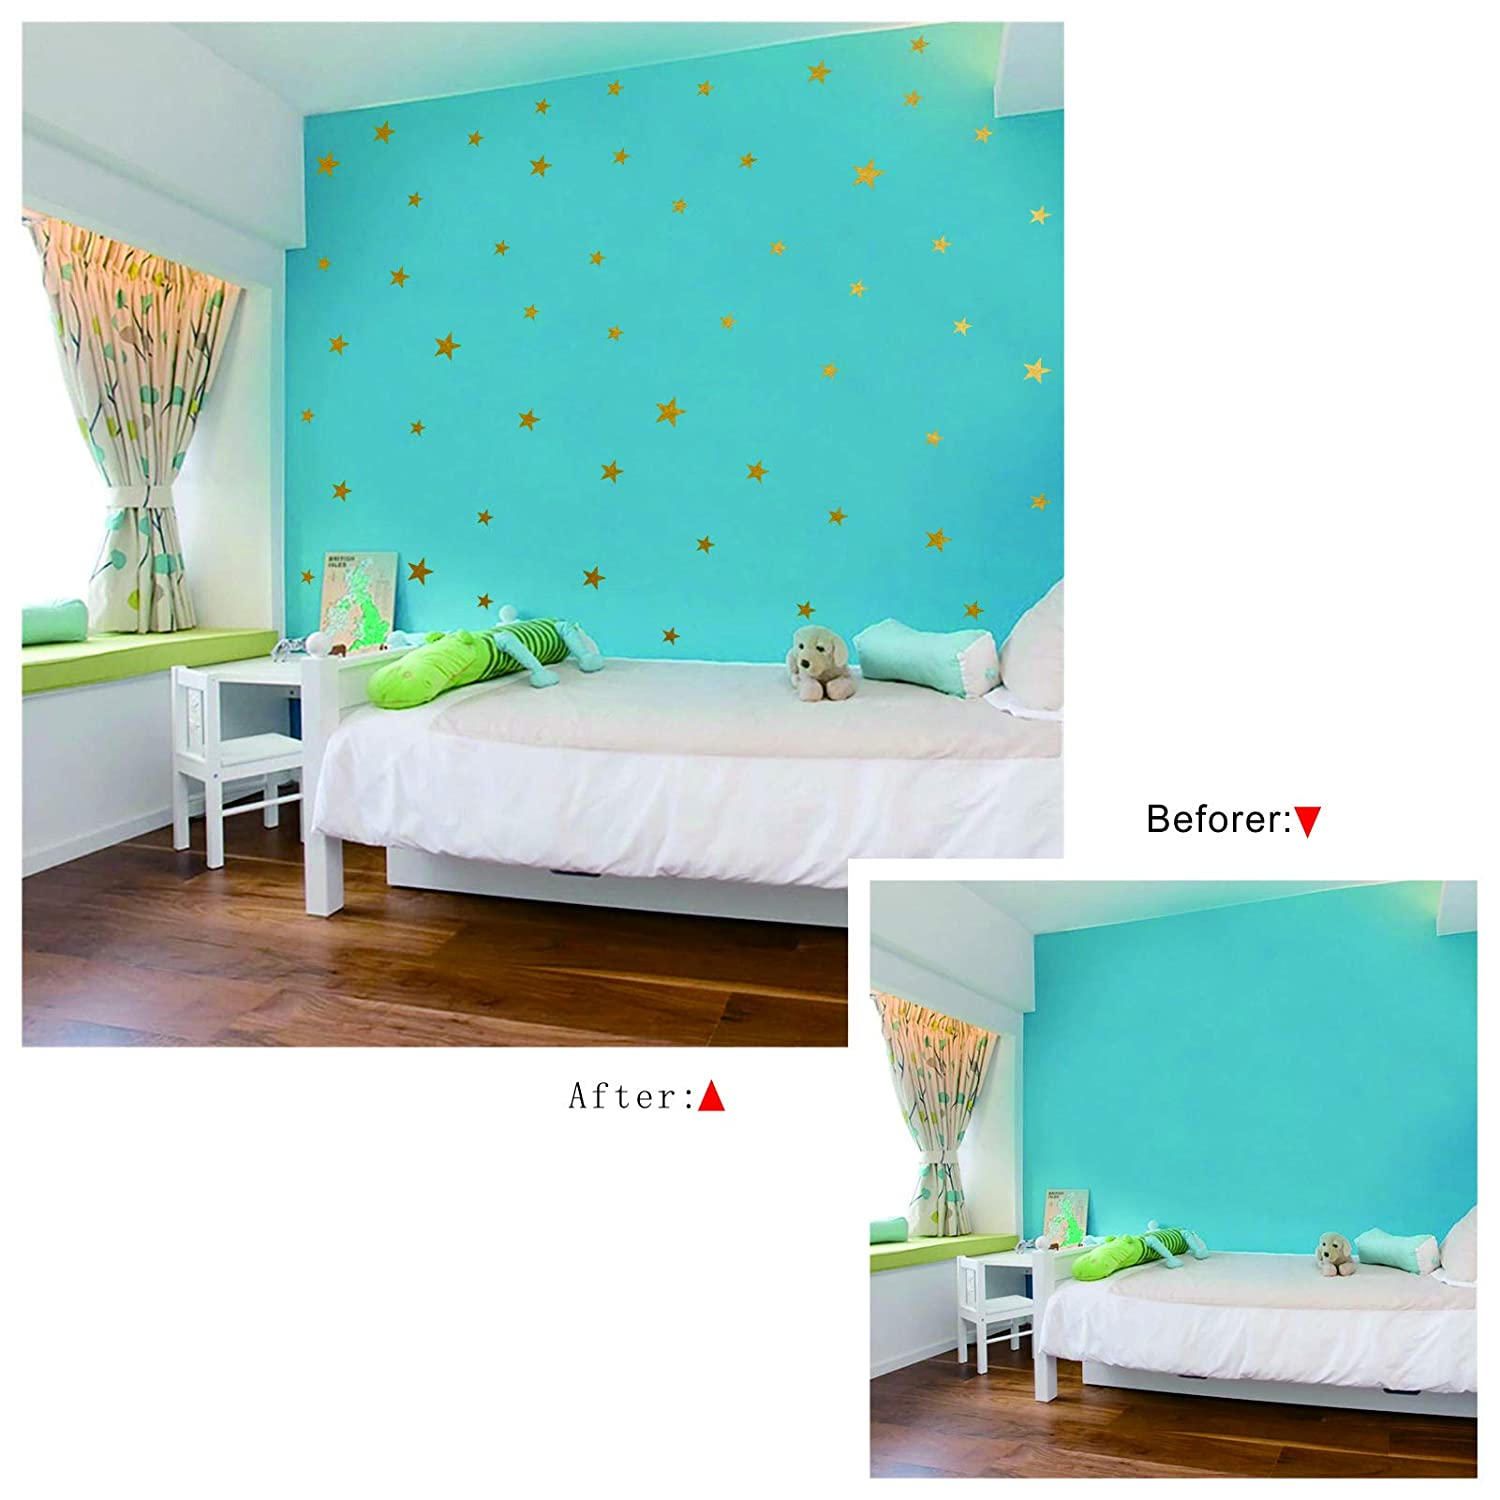 148pcs Gold Stars Wall Stickers for Bedroom,Baby Nursery Decor Wall Stickers for Kids,Boys Girls Room Wall Decals Decoration